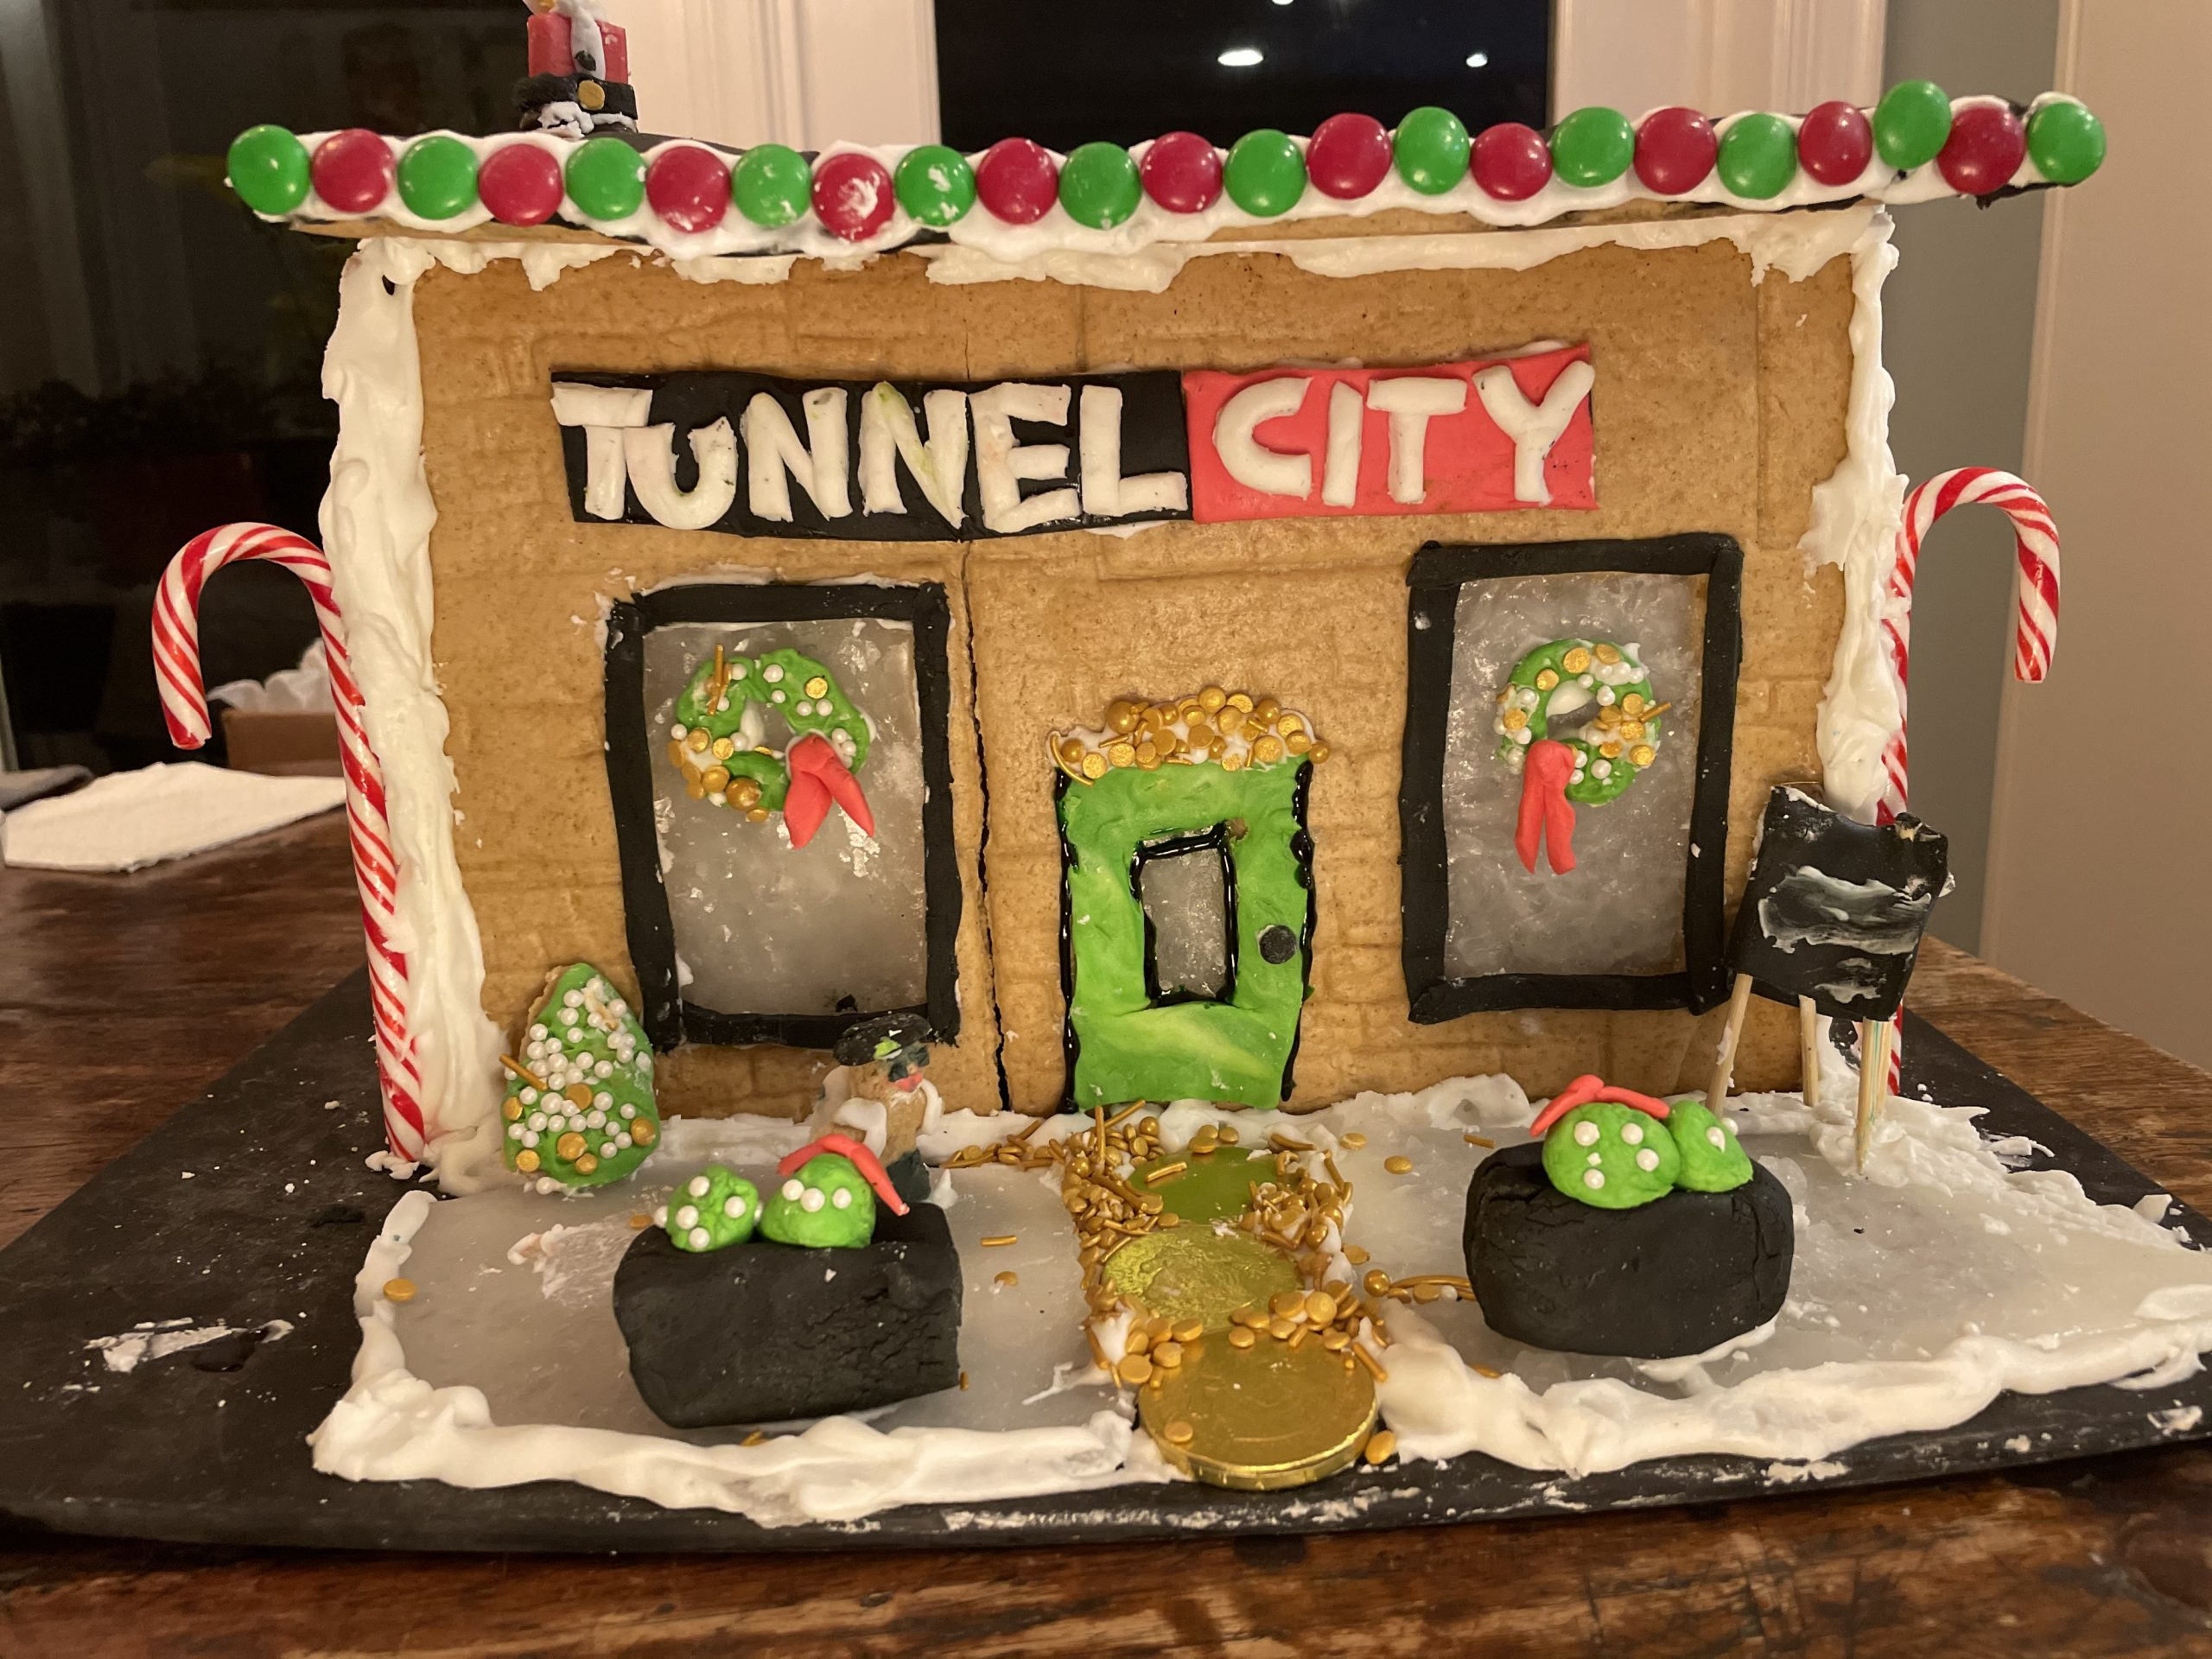 Tunnel City